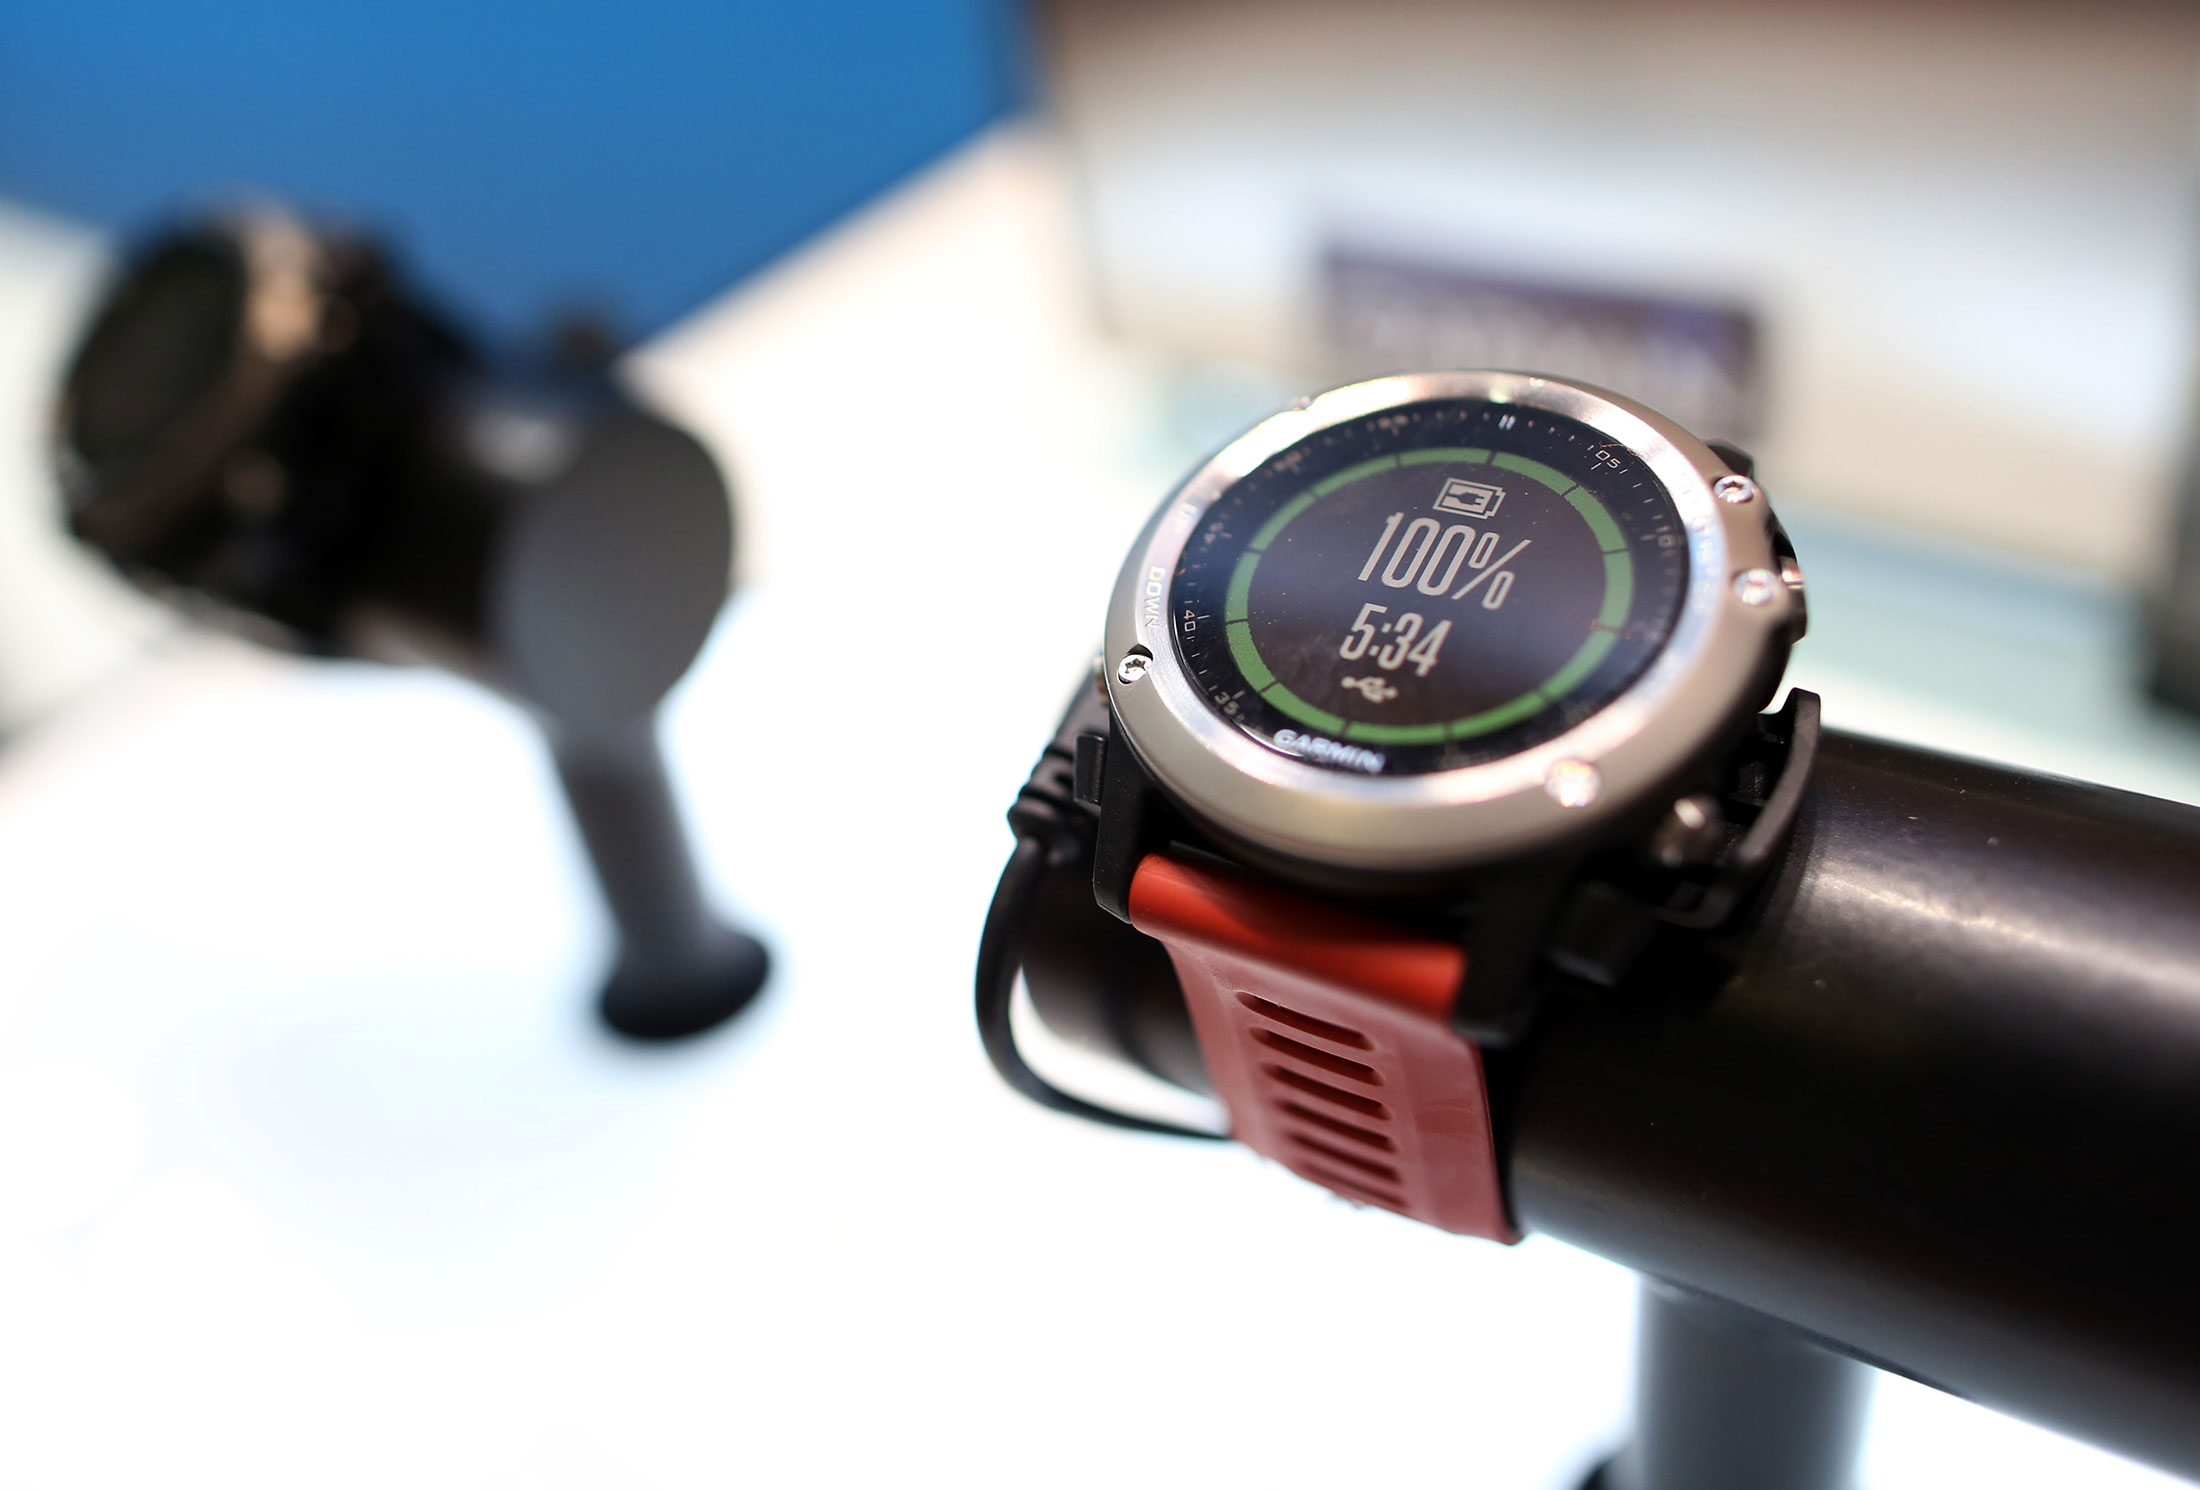 What You Missed at This Year's IFA